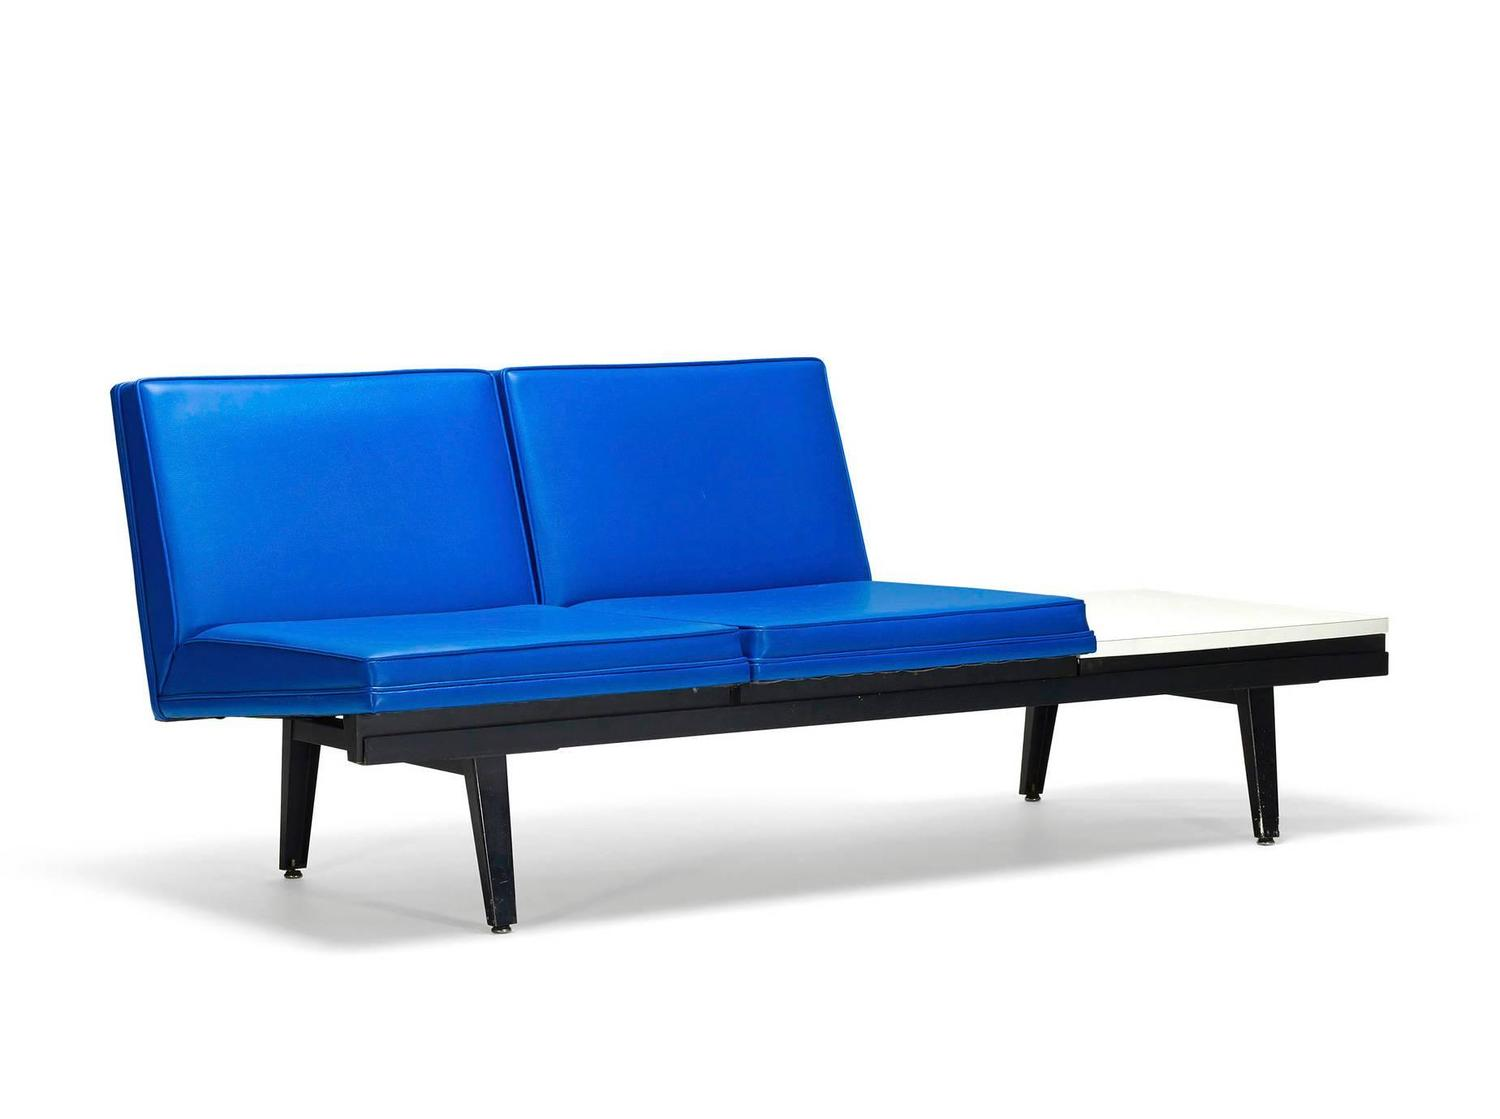 Steel frame sofa by george nelson for sale at 1stdibs Steel frame sofa